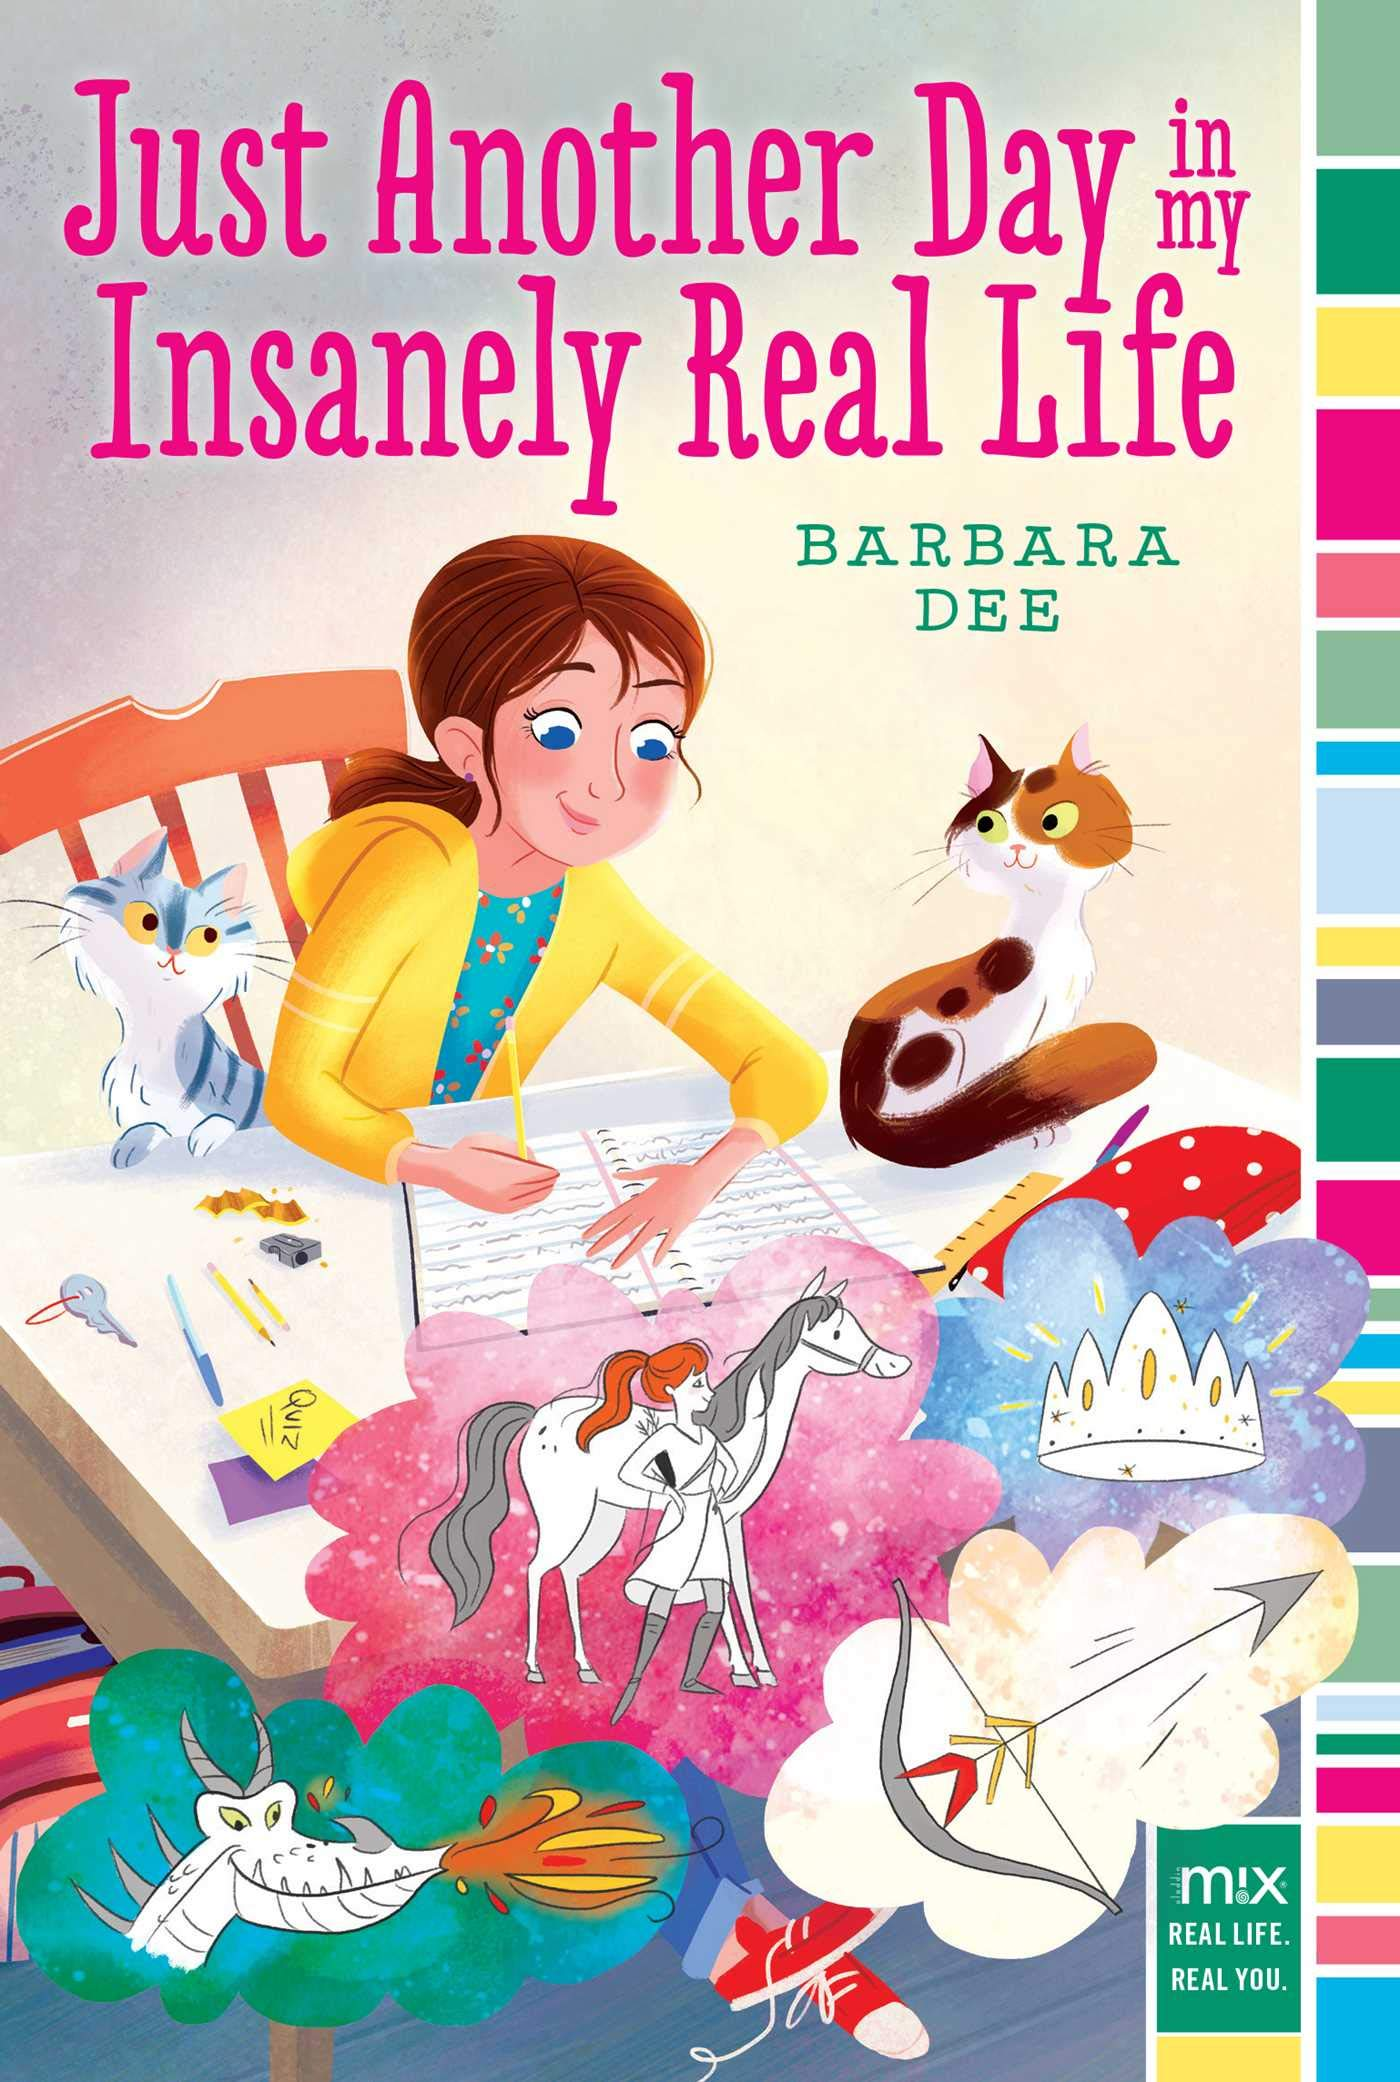 Download Just Another Day in My Insanely Real Life (mix) ebook